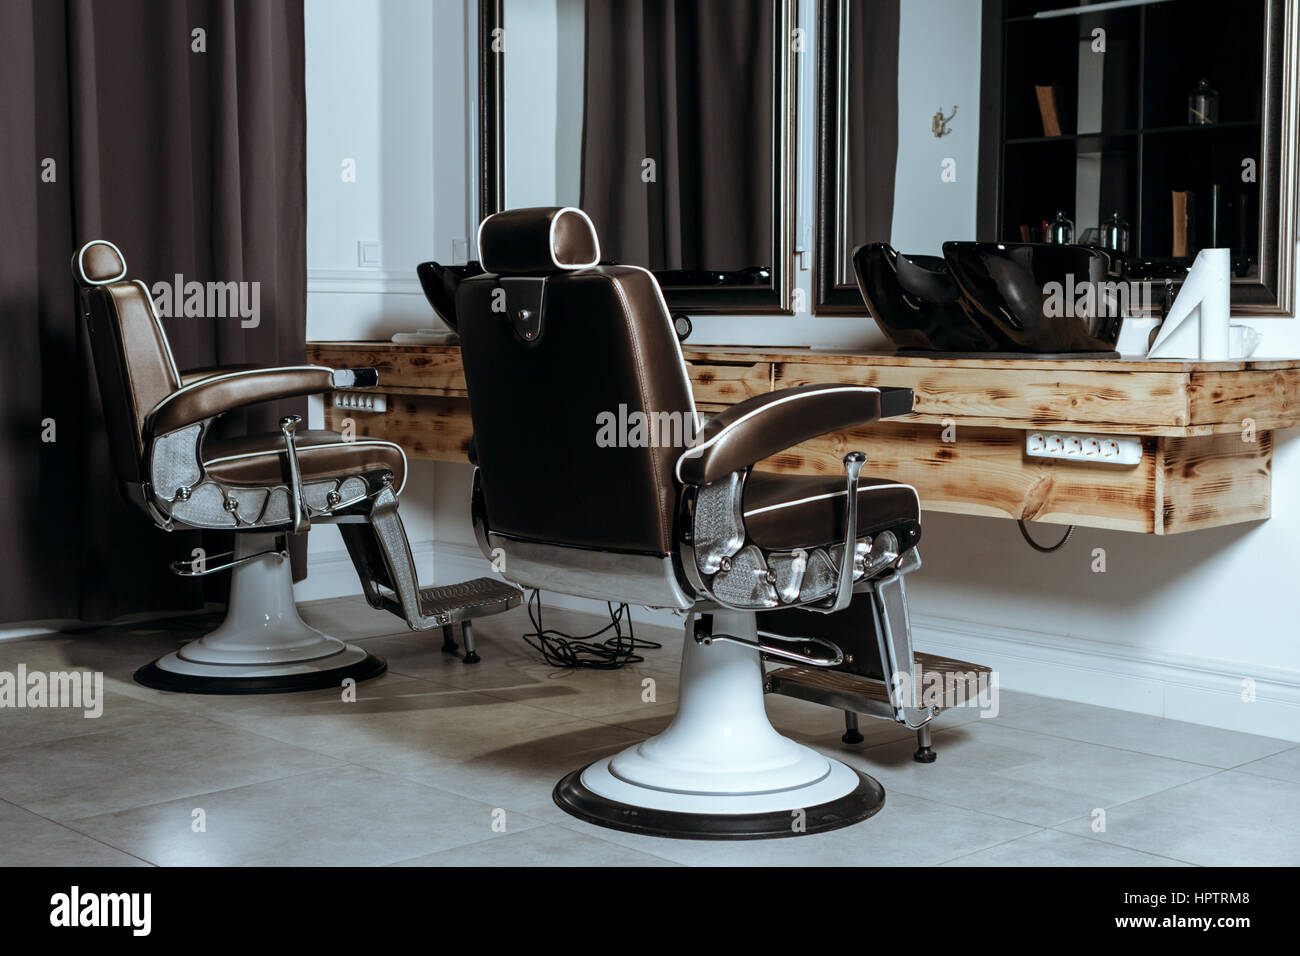 Stylish Vintage Barber Chairs In Wooden Interior. Barbershop Theme - Stock  Image - Barber Chairs Stock Photos & Barber Chairs Stock Images - Alamy